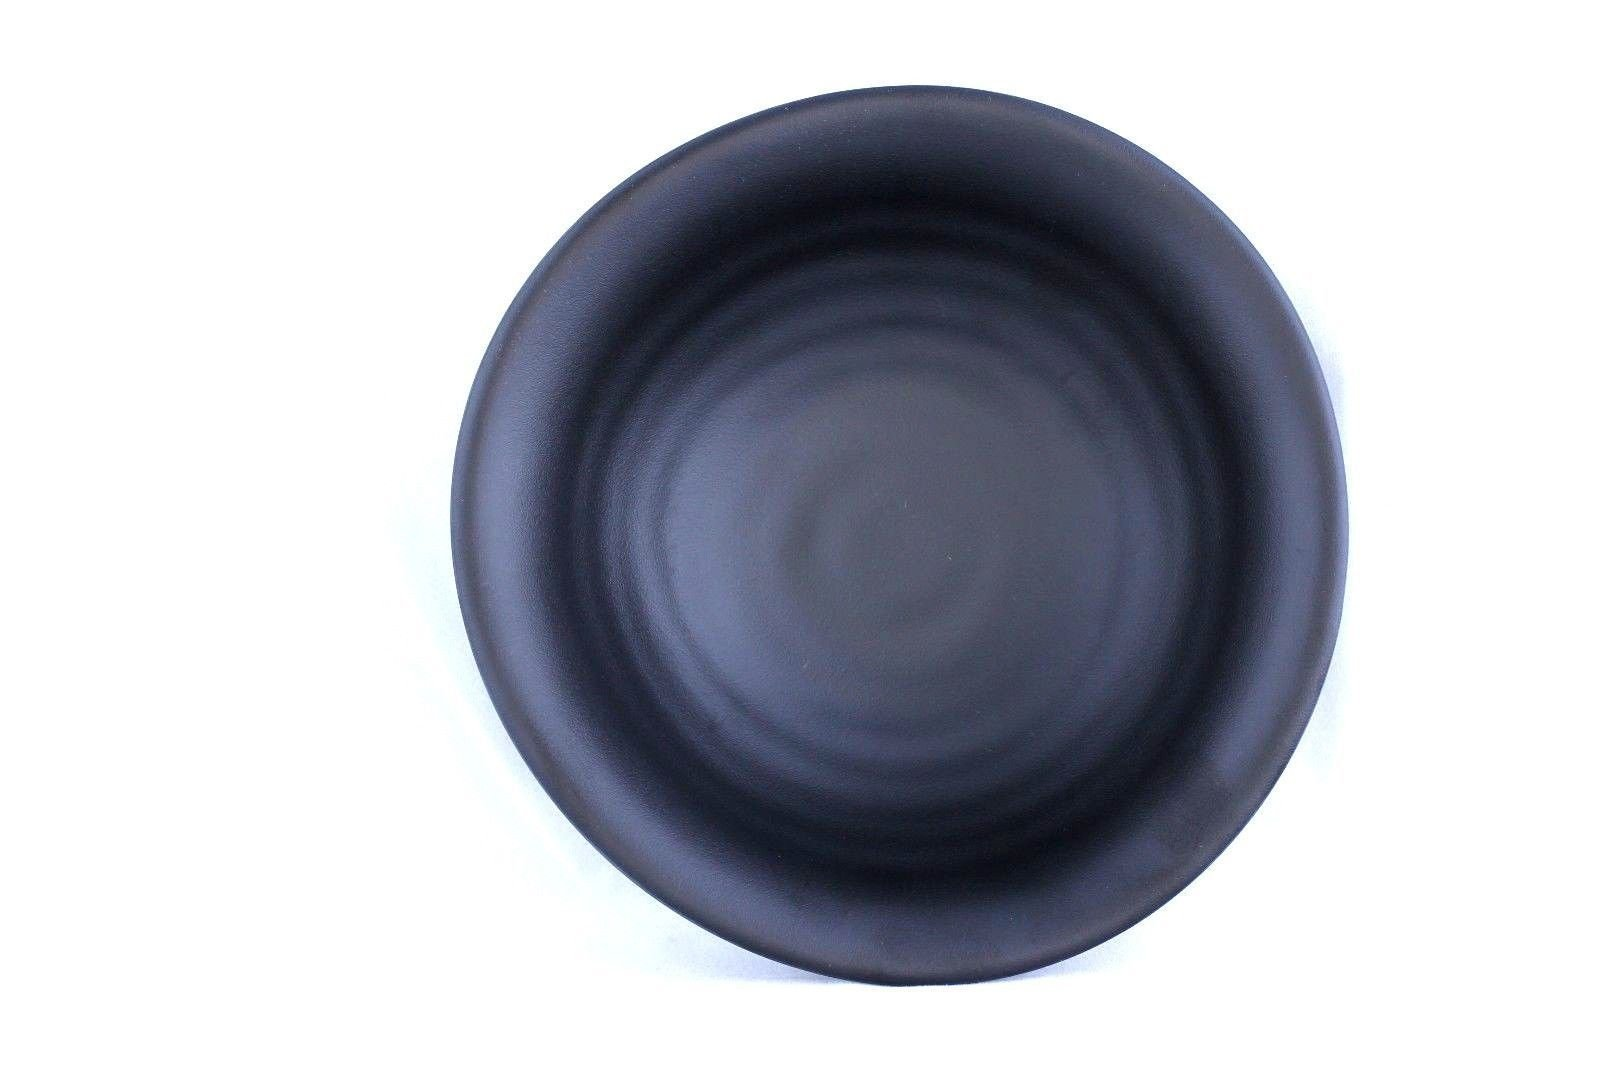 Lucky Star Melamine Soy Sauce Dishes Wasabi Sushi Sashimi Snack Dipping Round Plates, 5-3/4'' (8 oz) or 7-1/2'' (16 oz), Black (24, 7-1/2'' (16 oz)) by Lucky Star (Image #2)